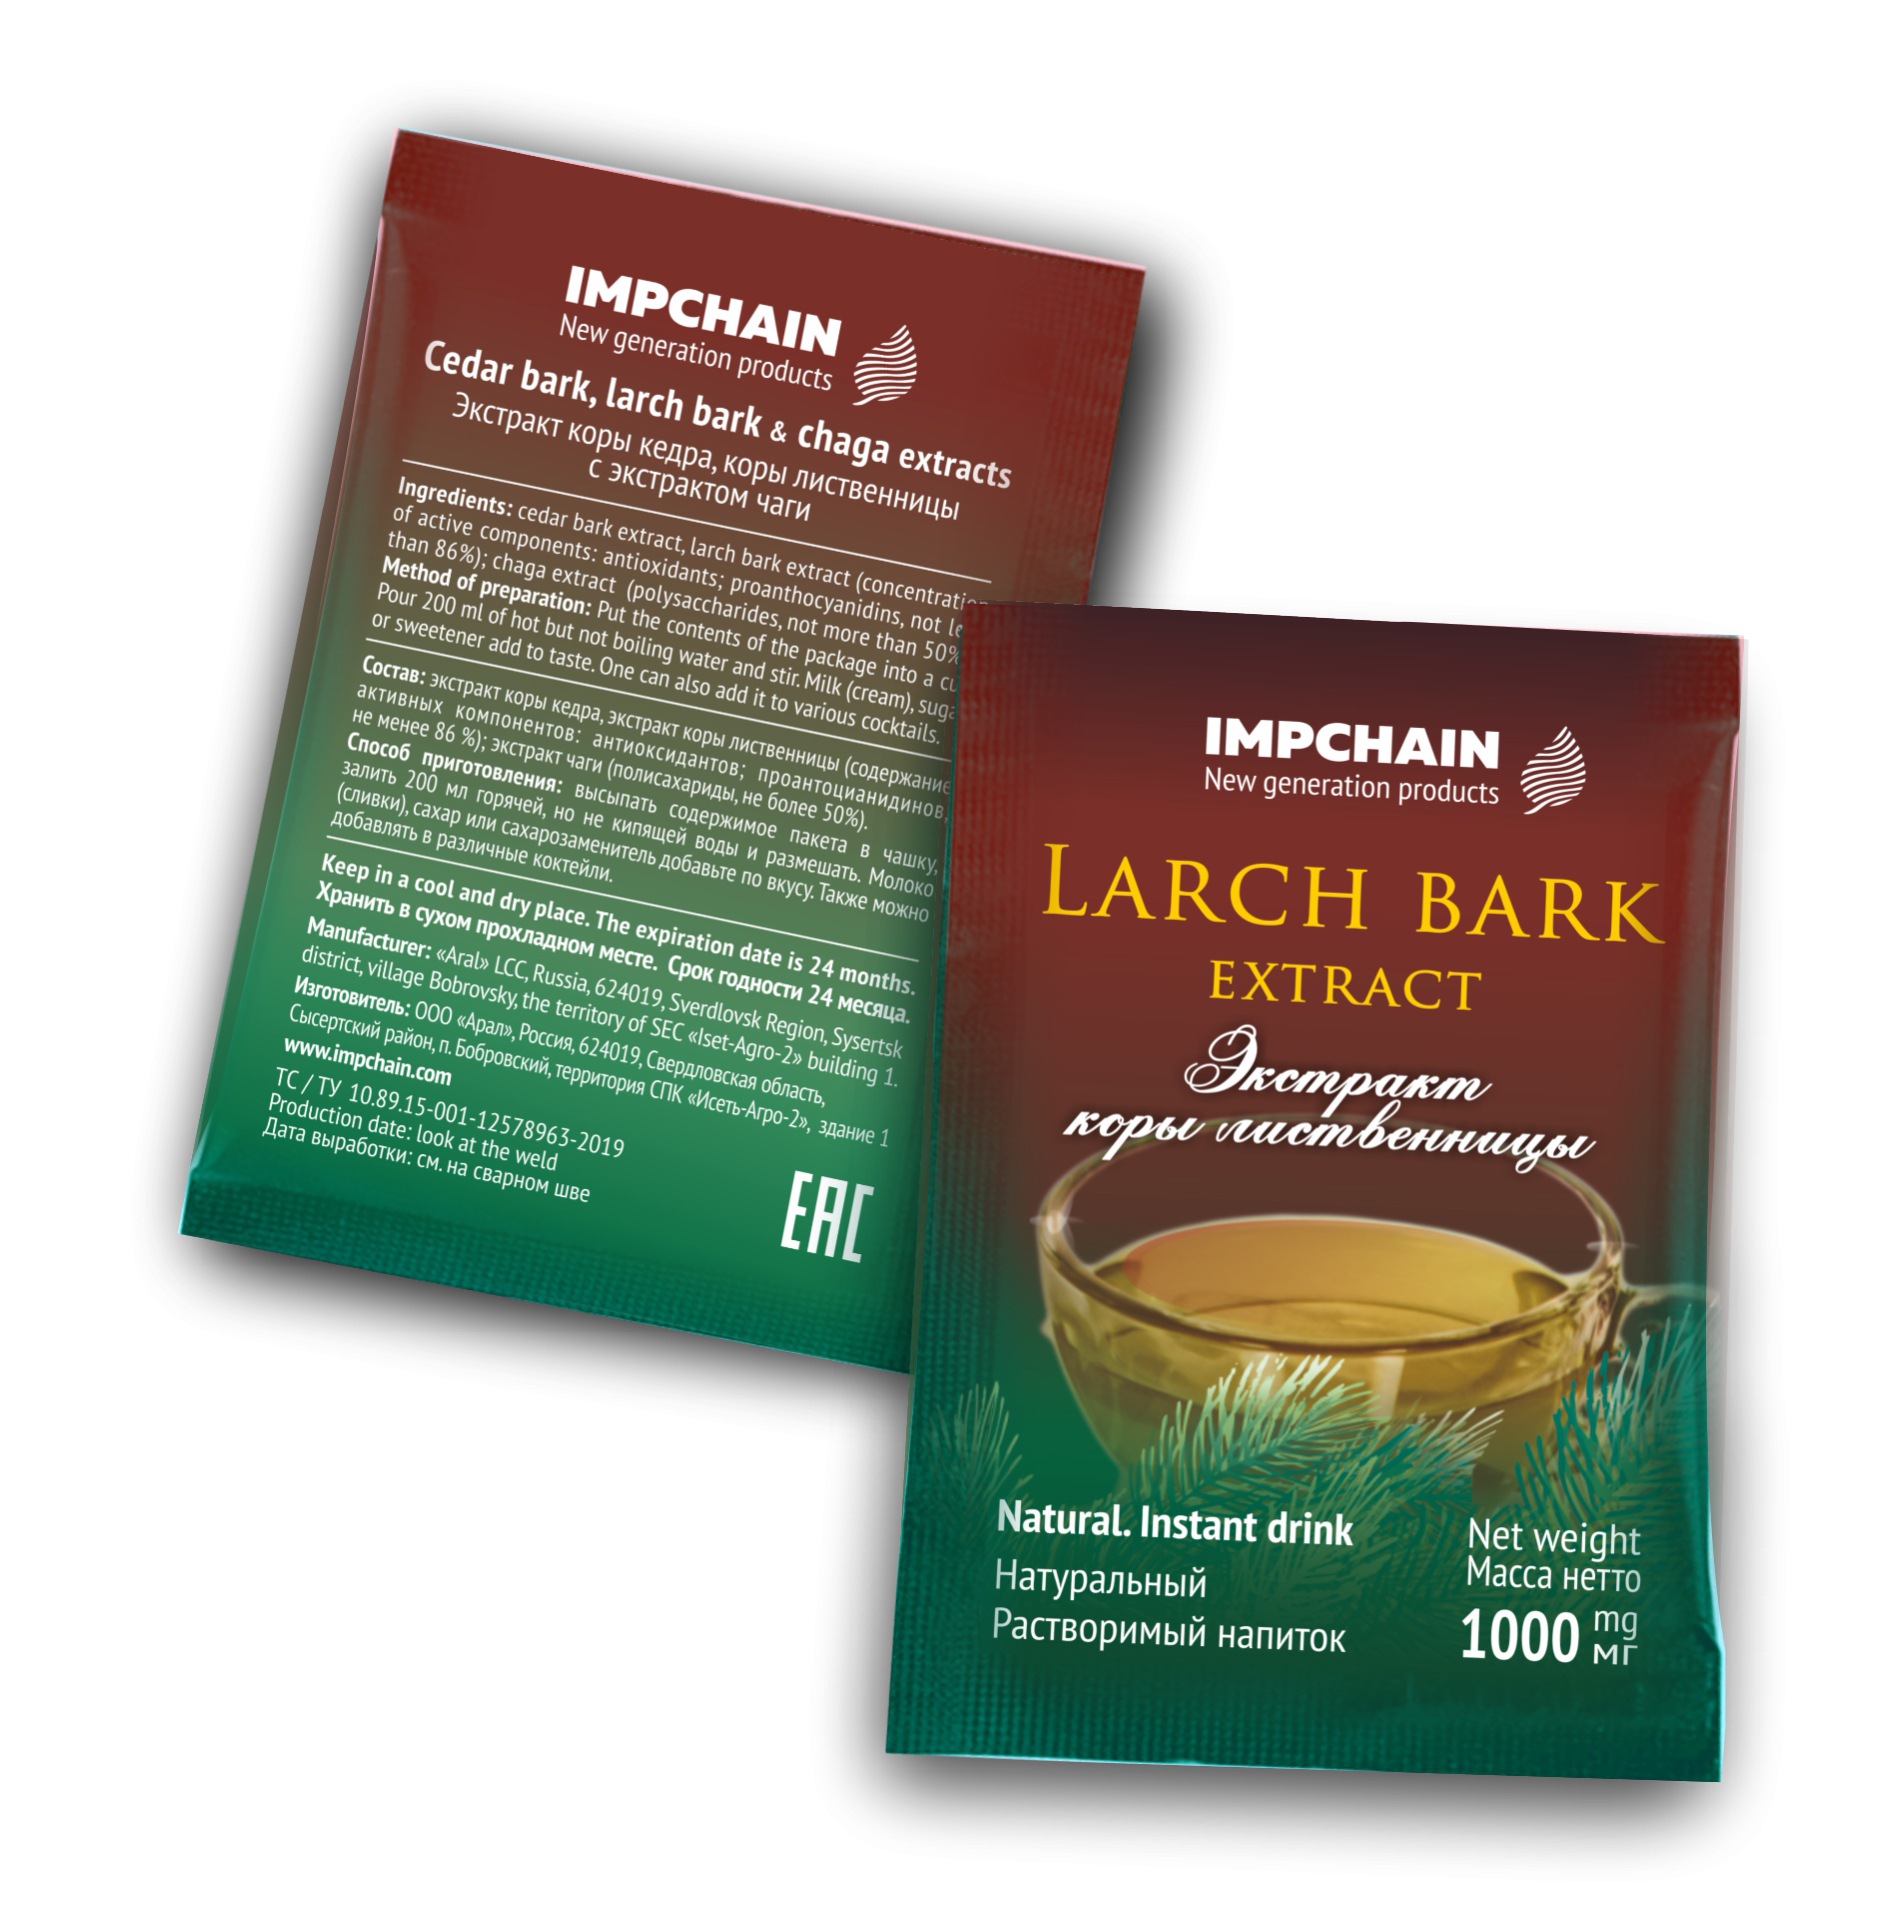 Larch bark extract. Instant drink. The price is indicated for the 1st package. The price of a bag is 20 rubles.